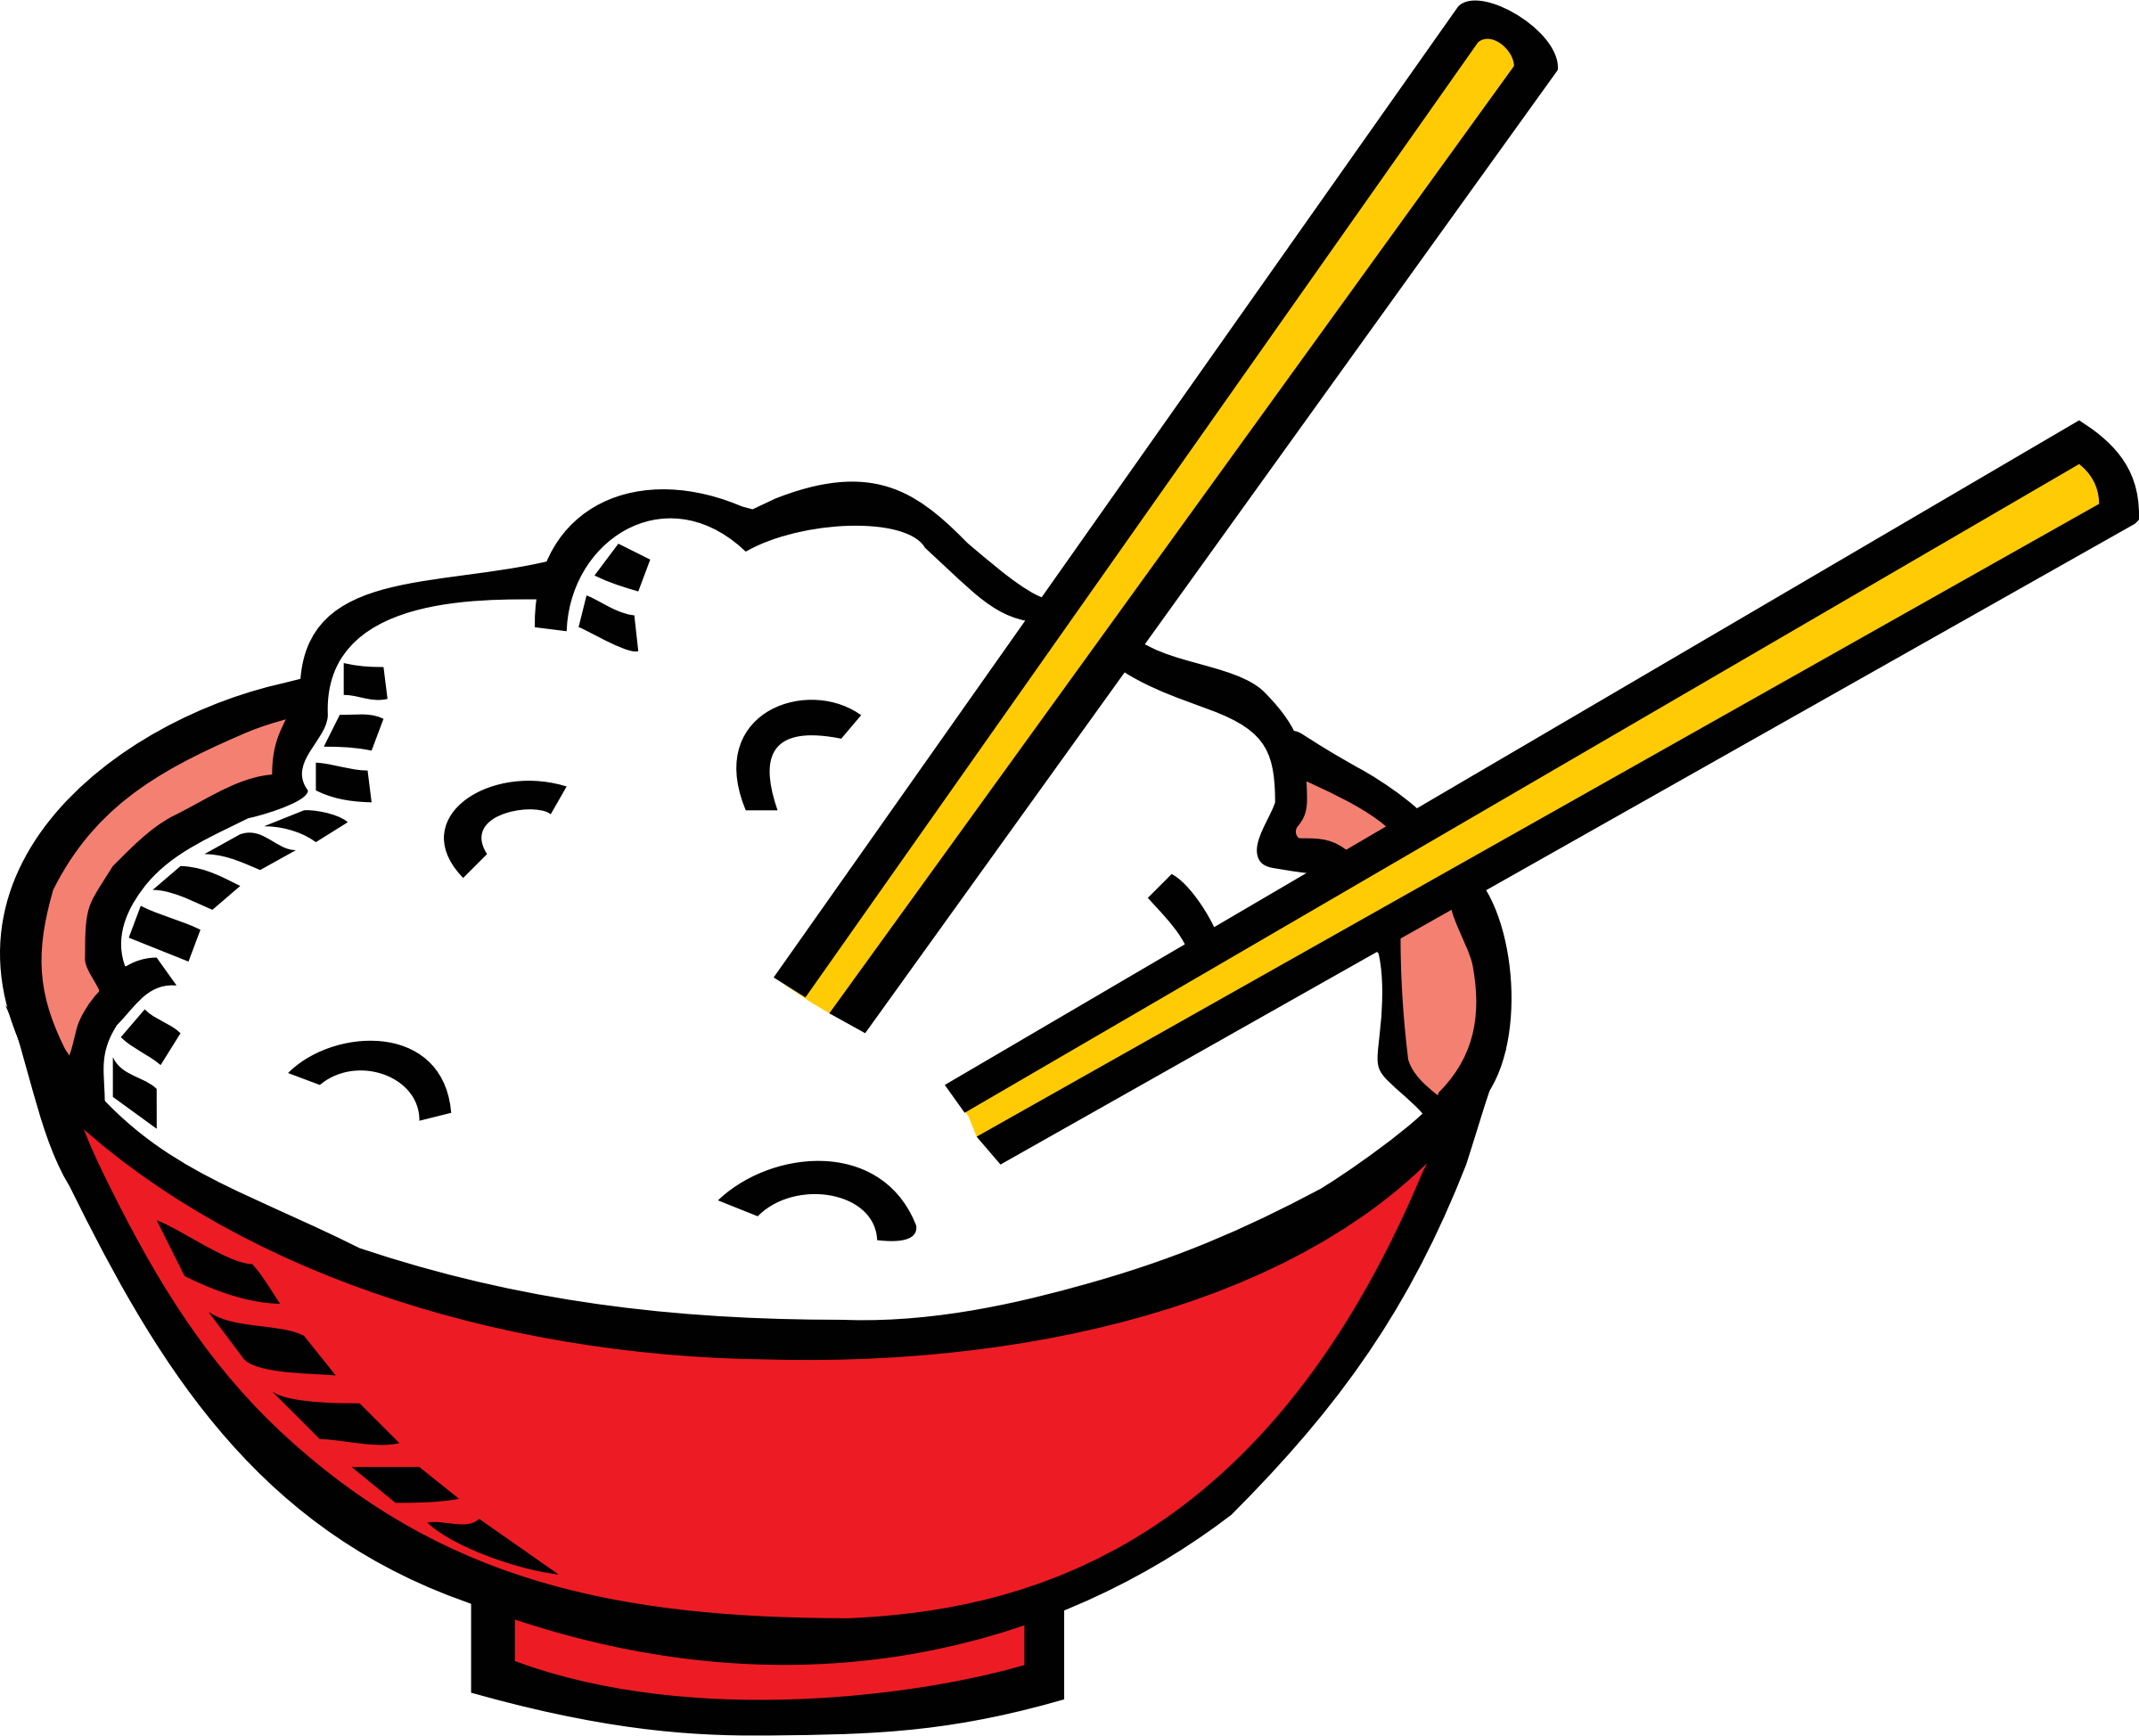 clipart free download Free cliparts download clip. Chopsticks clipart